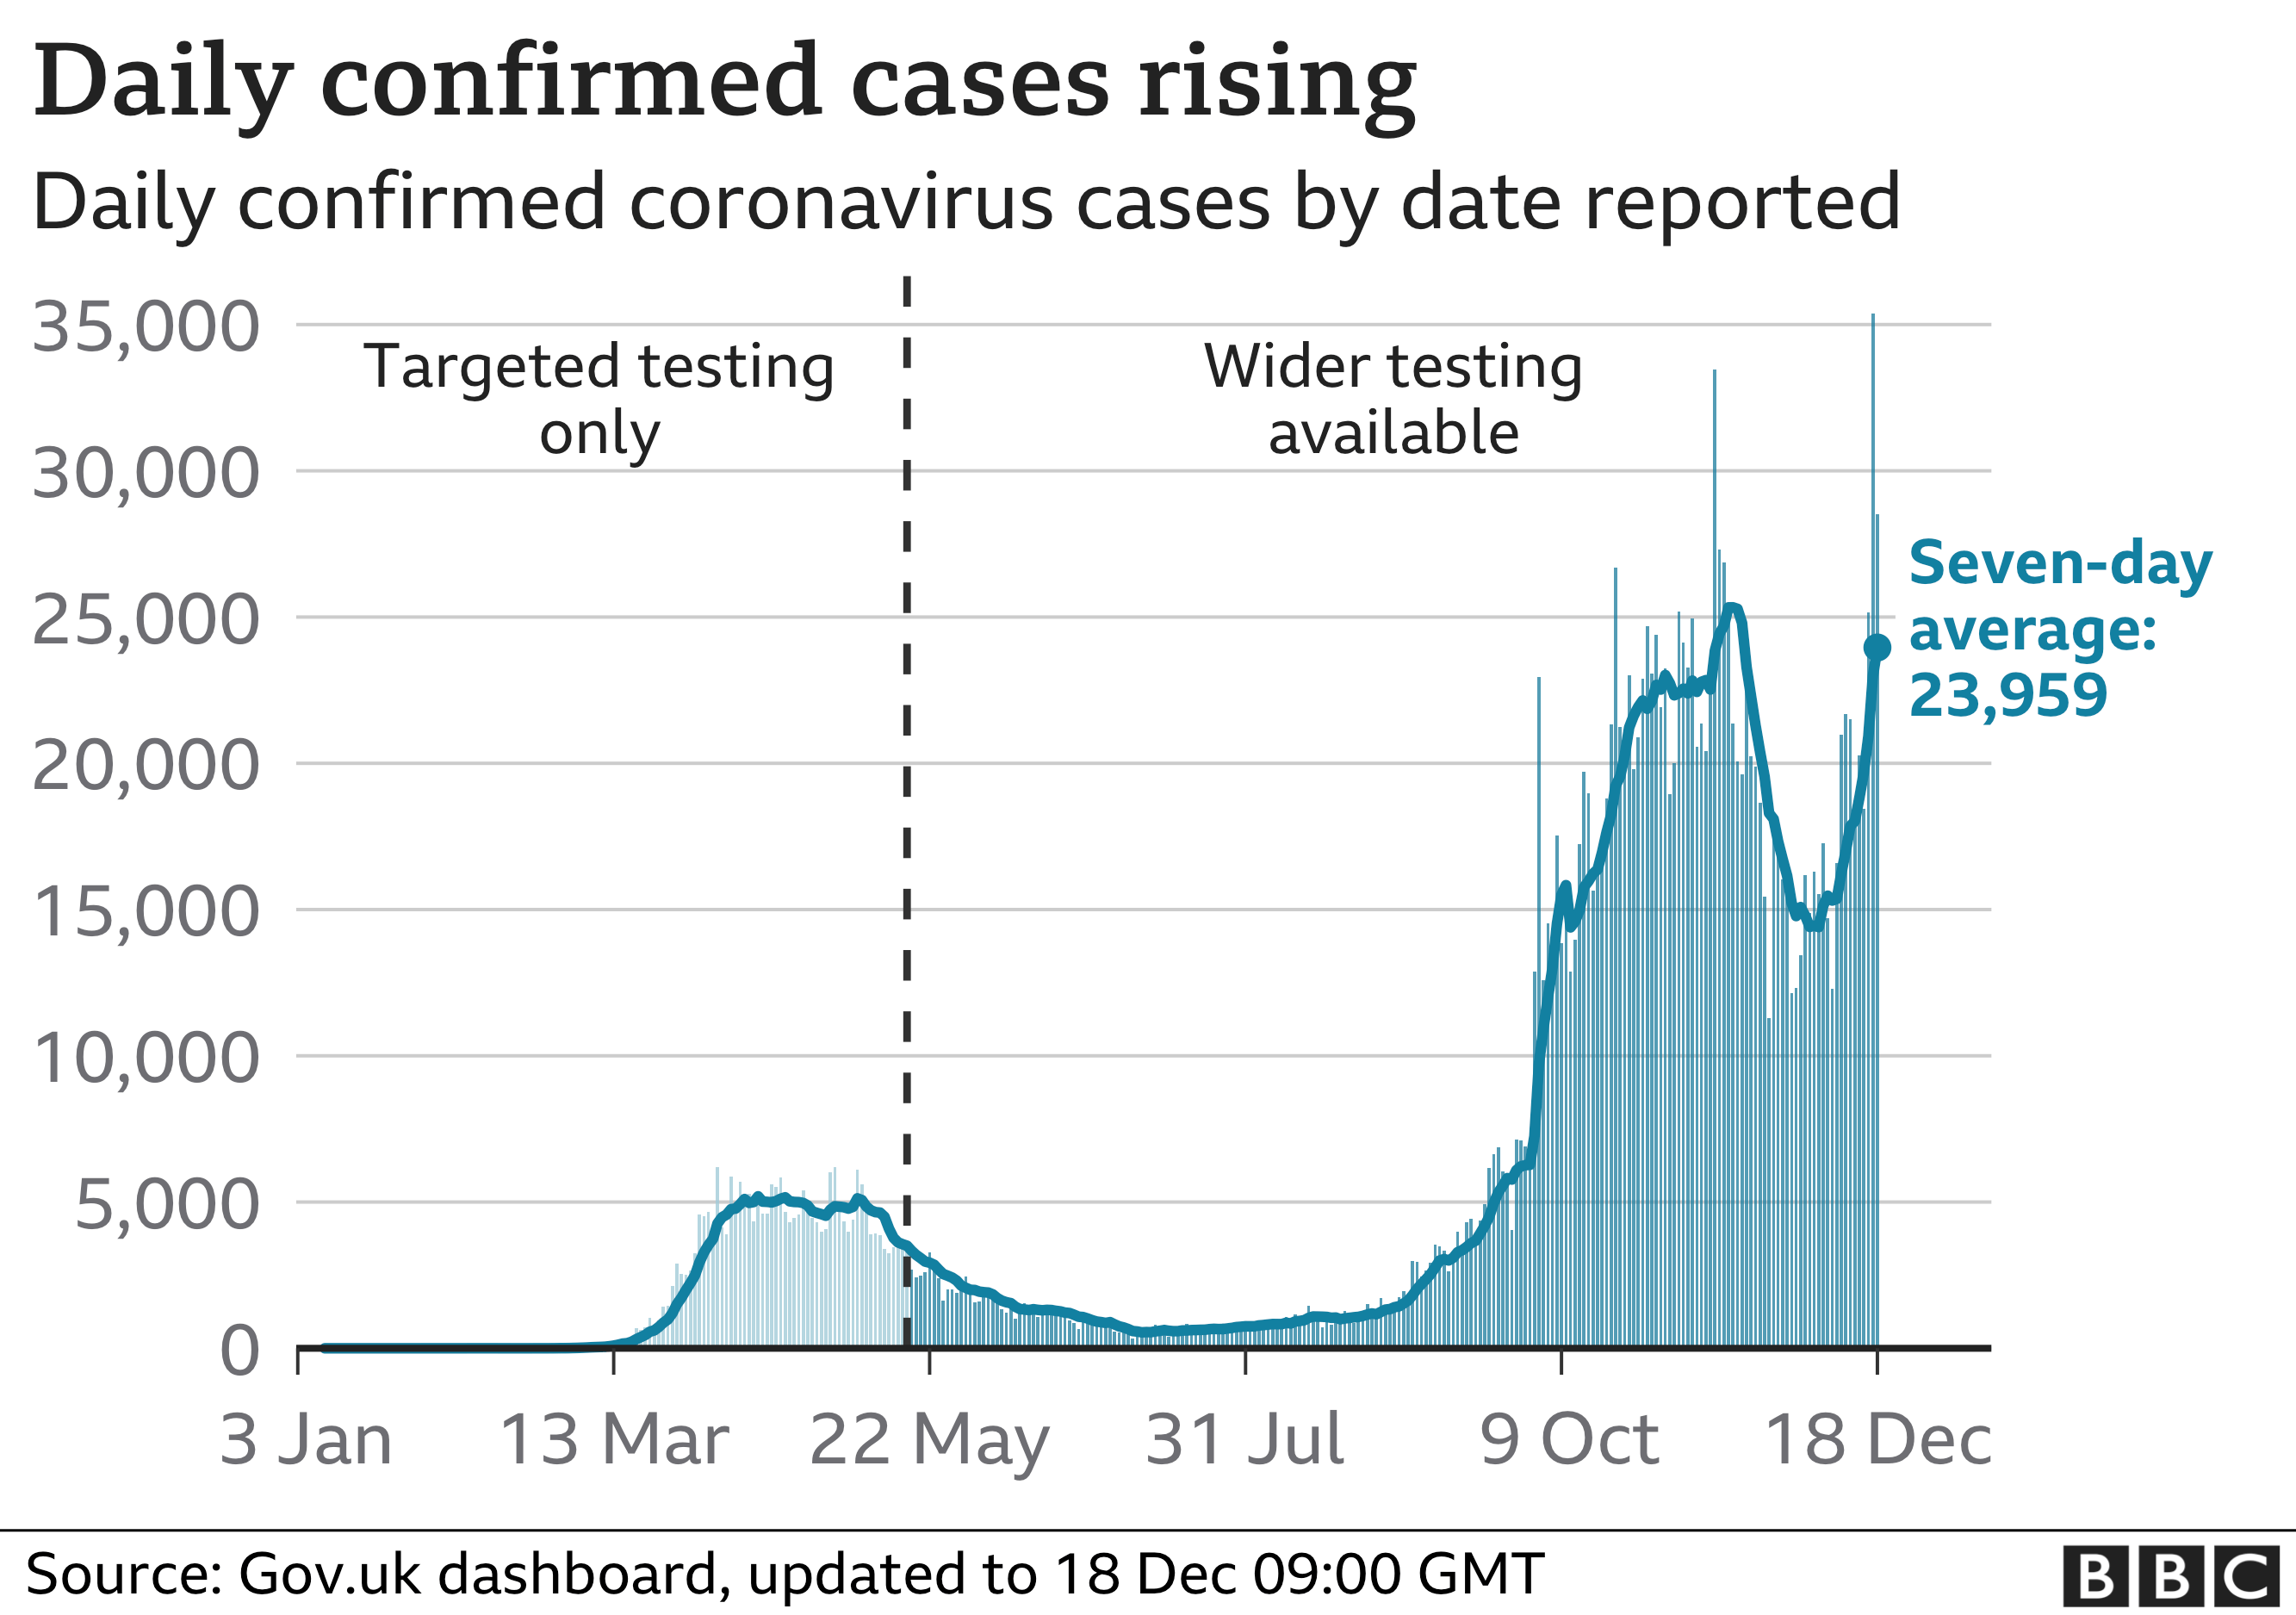 Graph showing daily confirmed cases rising in the UK